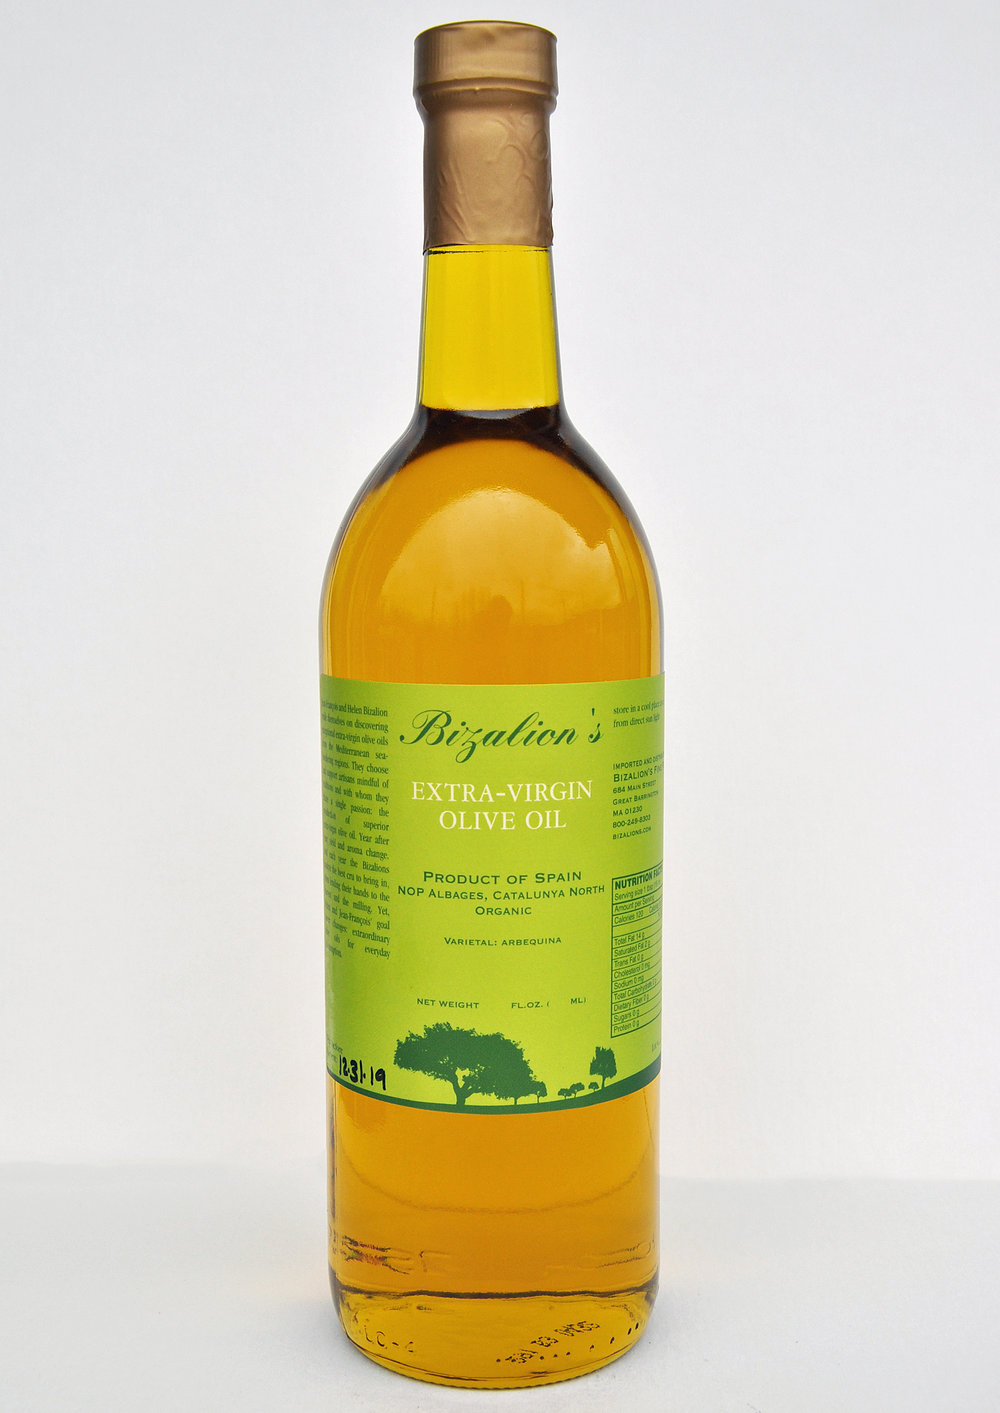 SPAIN | NOP Albages, Catalunya North | Organic, 750ml (25.4 fl.oz.)